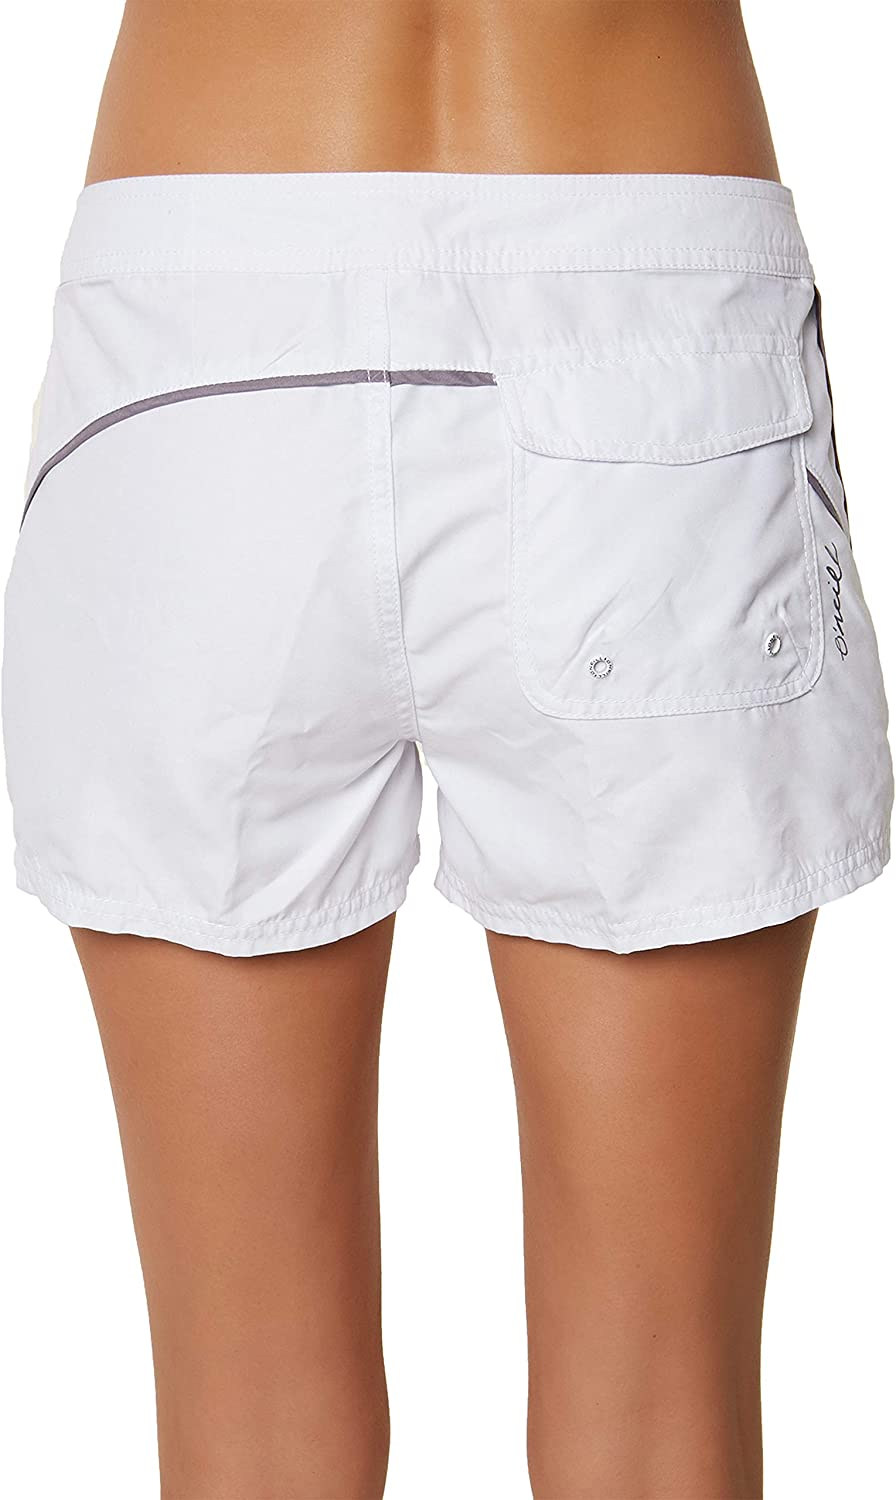 ONEILL Womens Salt Water 3 Boardshort